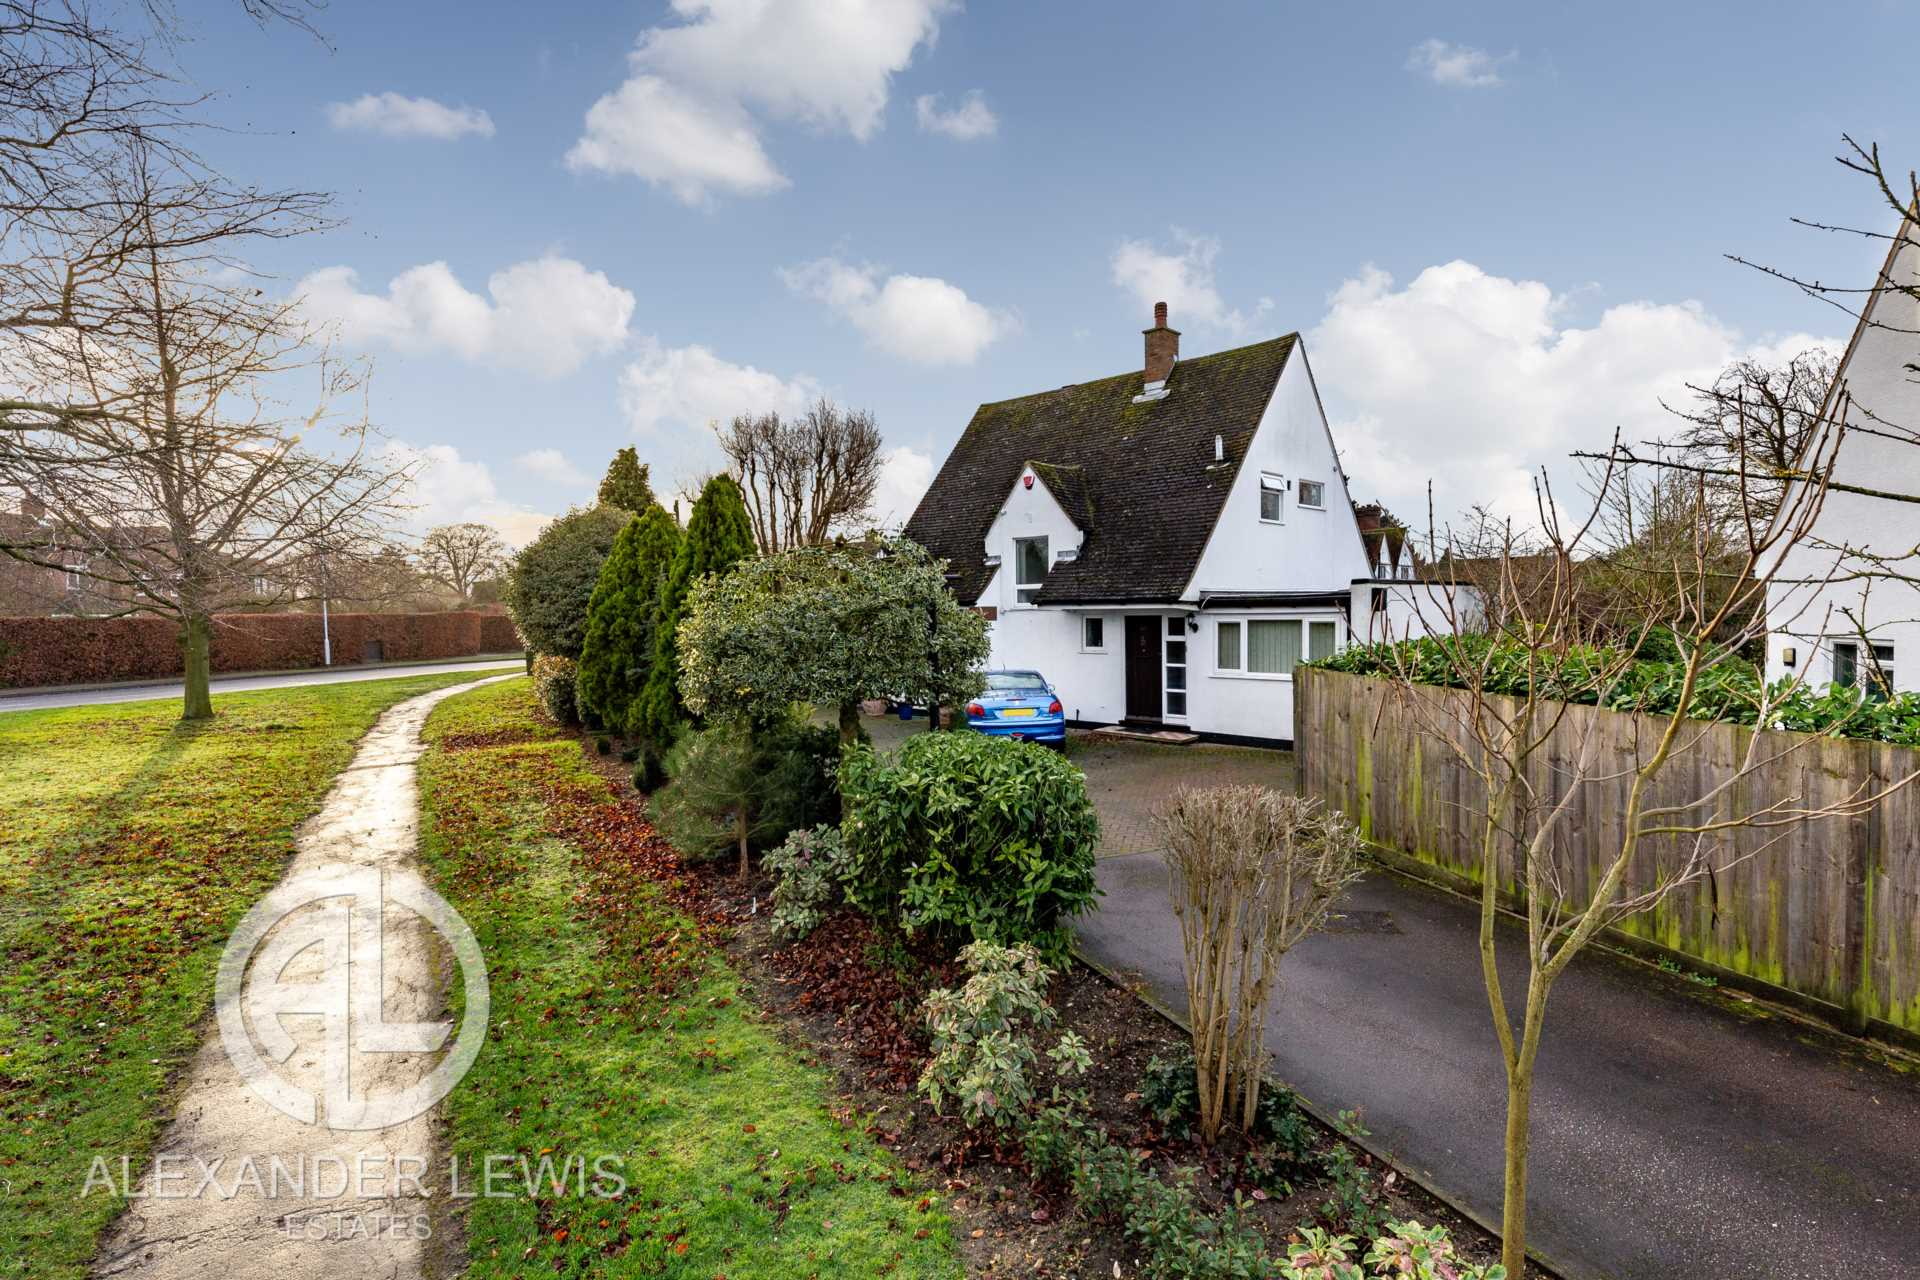 Croft Lane, Letchworth Garden City, SG6 1AP, Image 1